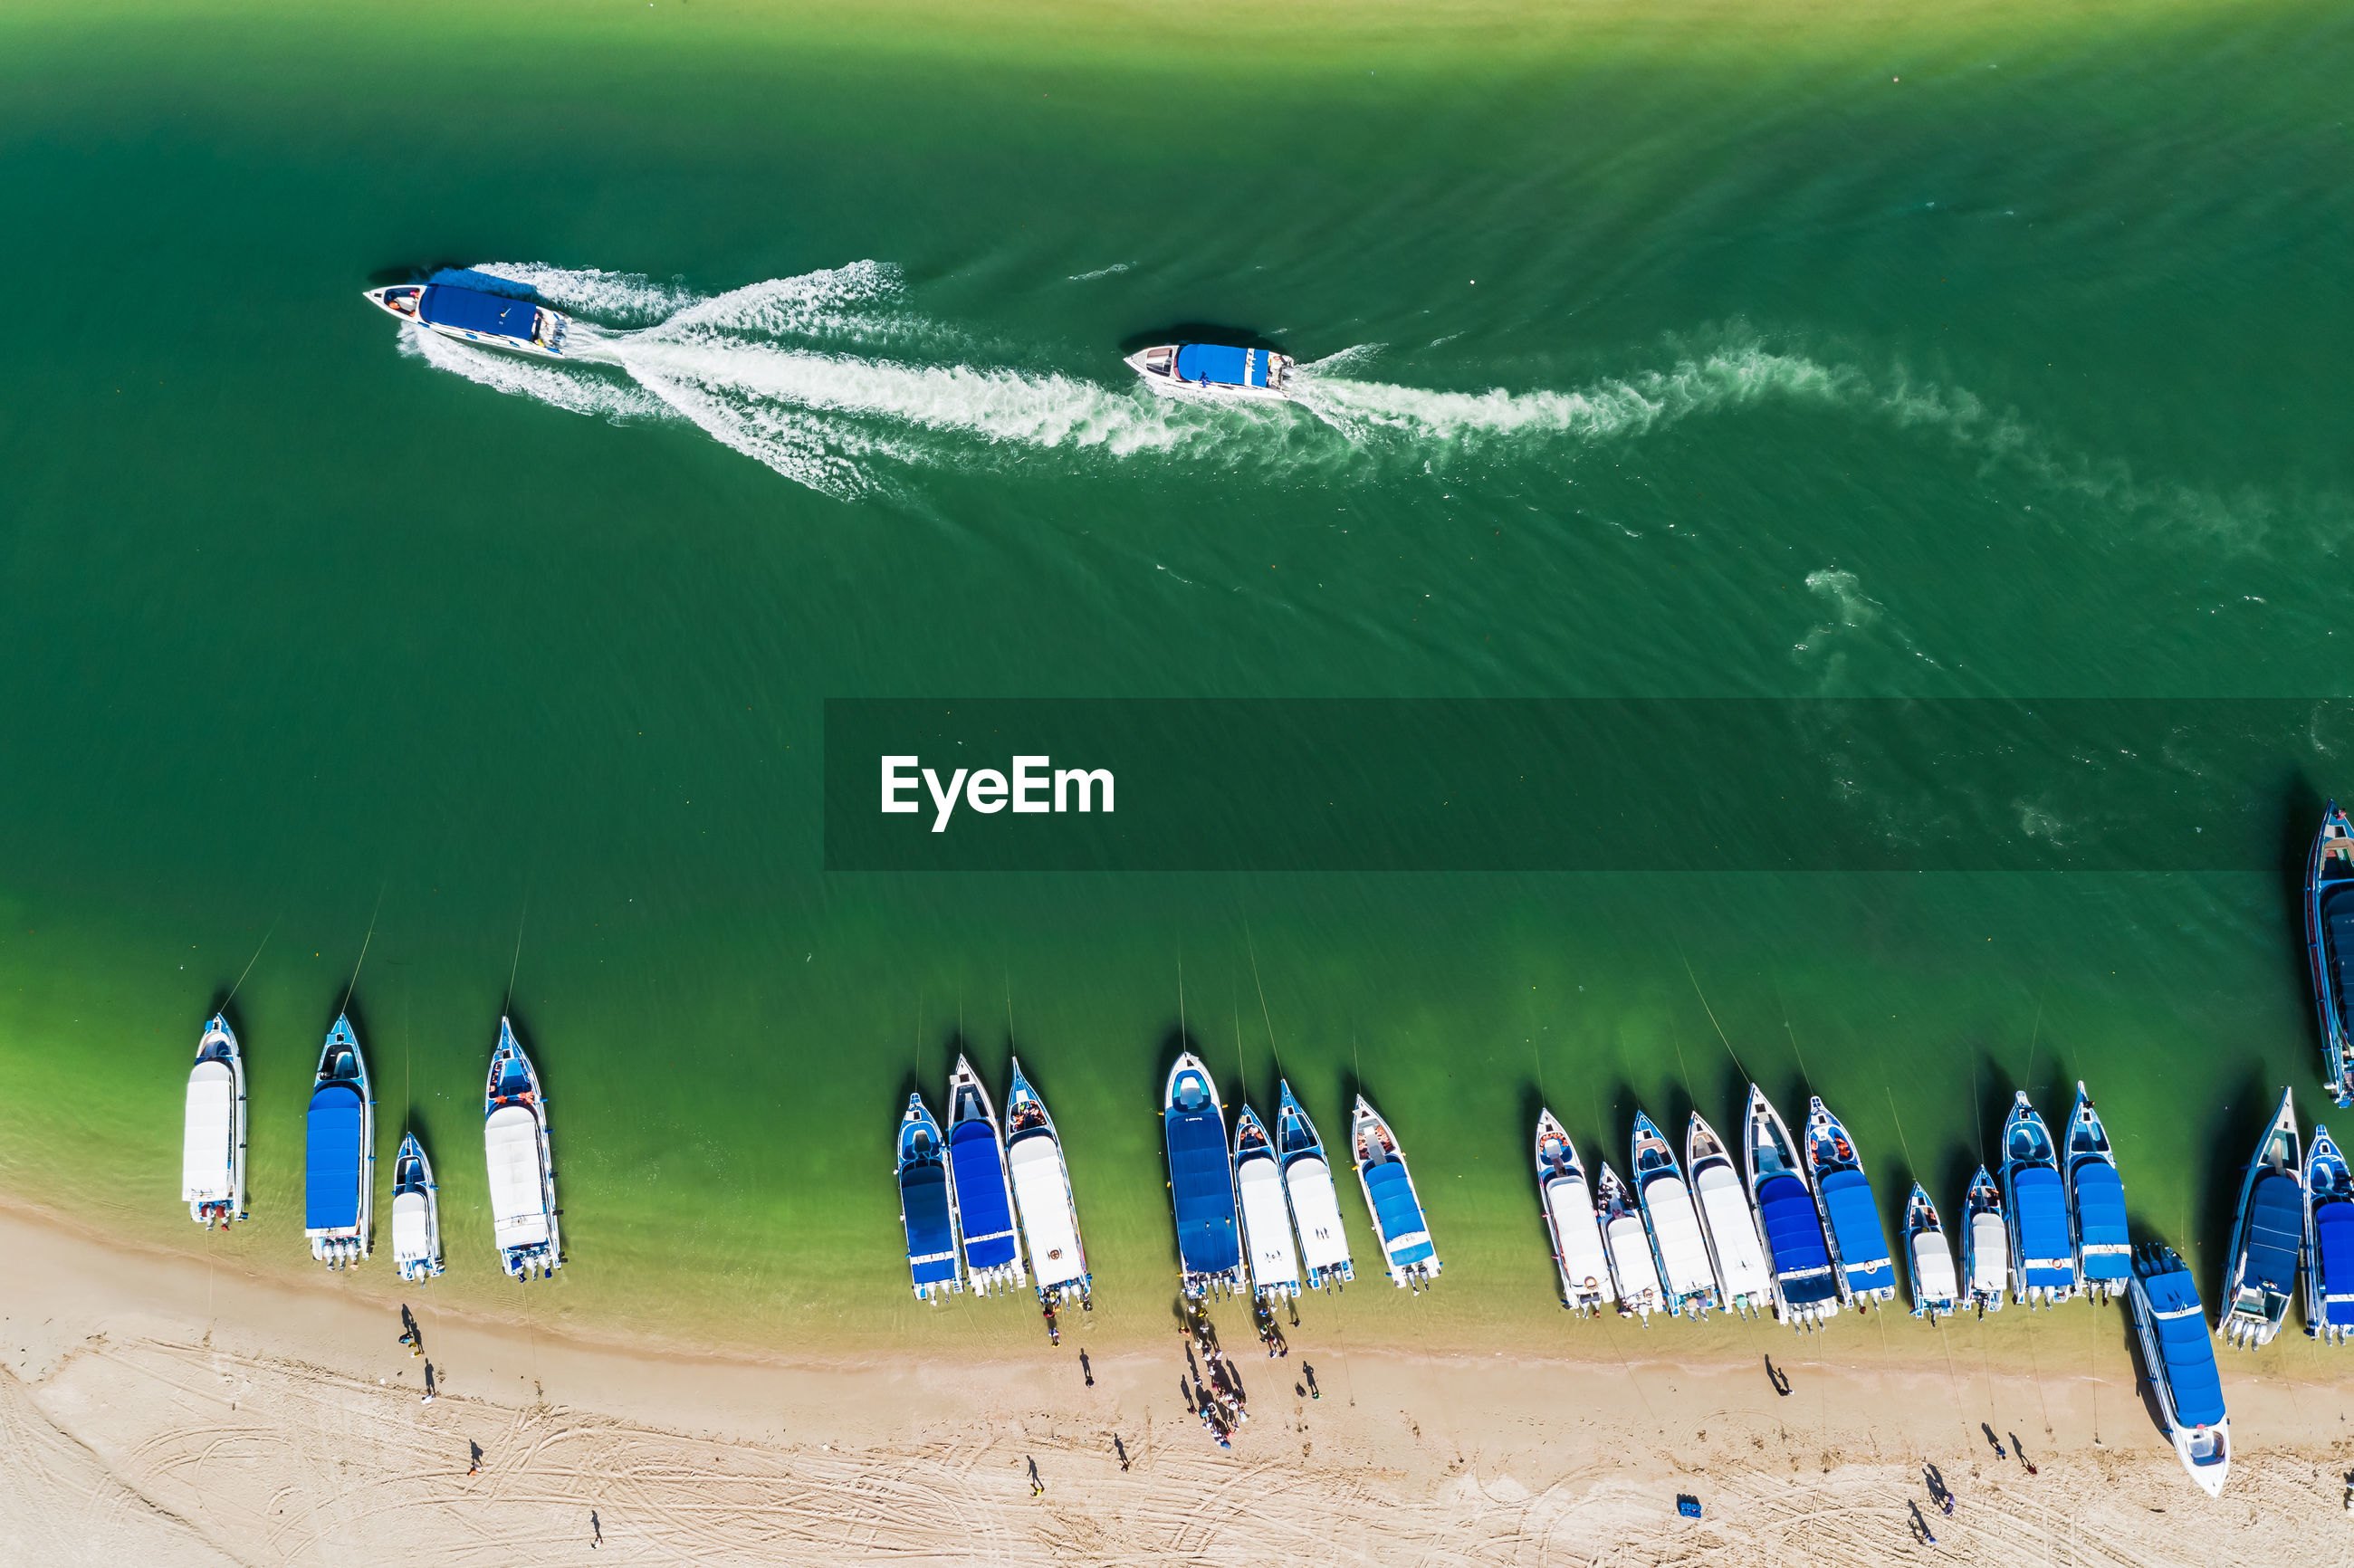 Aerial view of people standing on beach